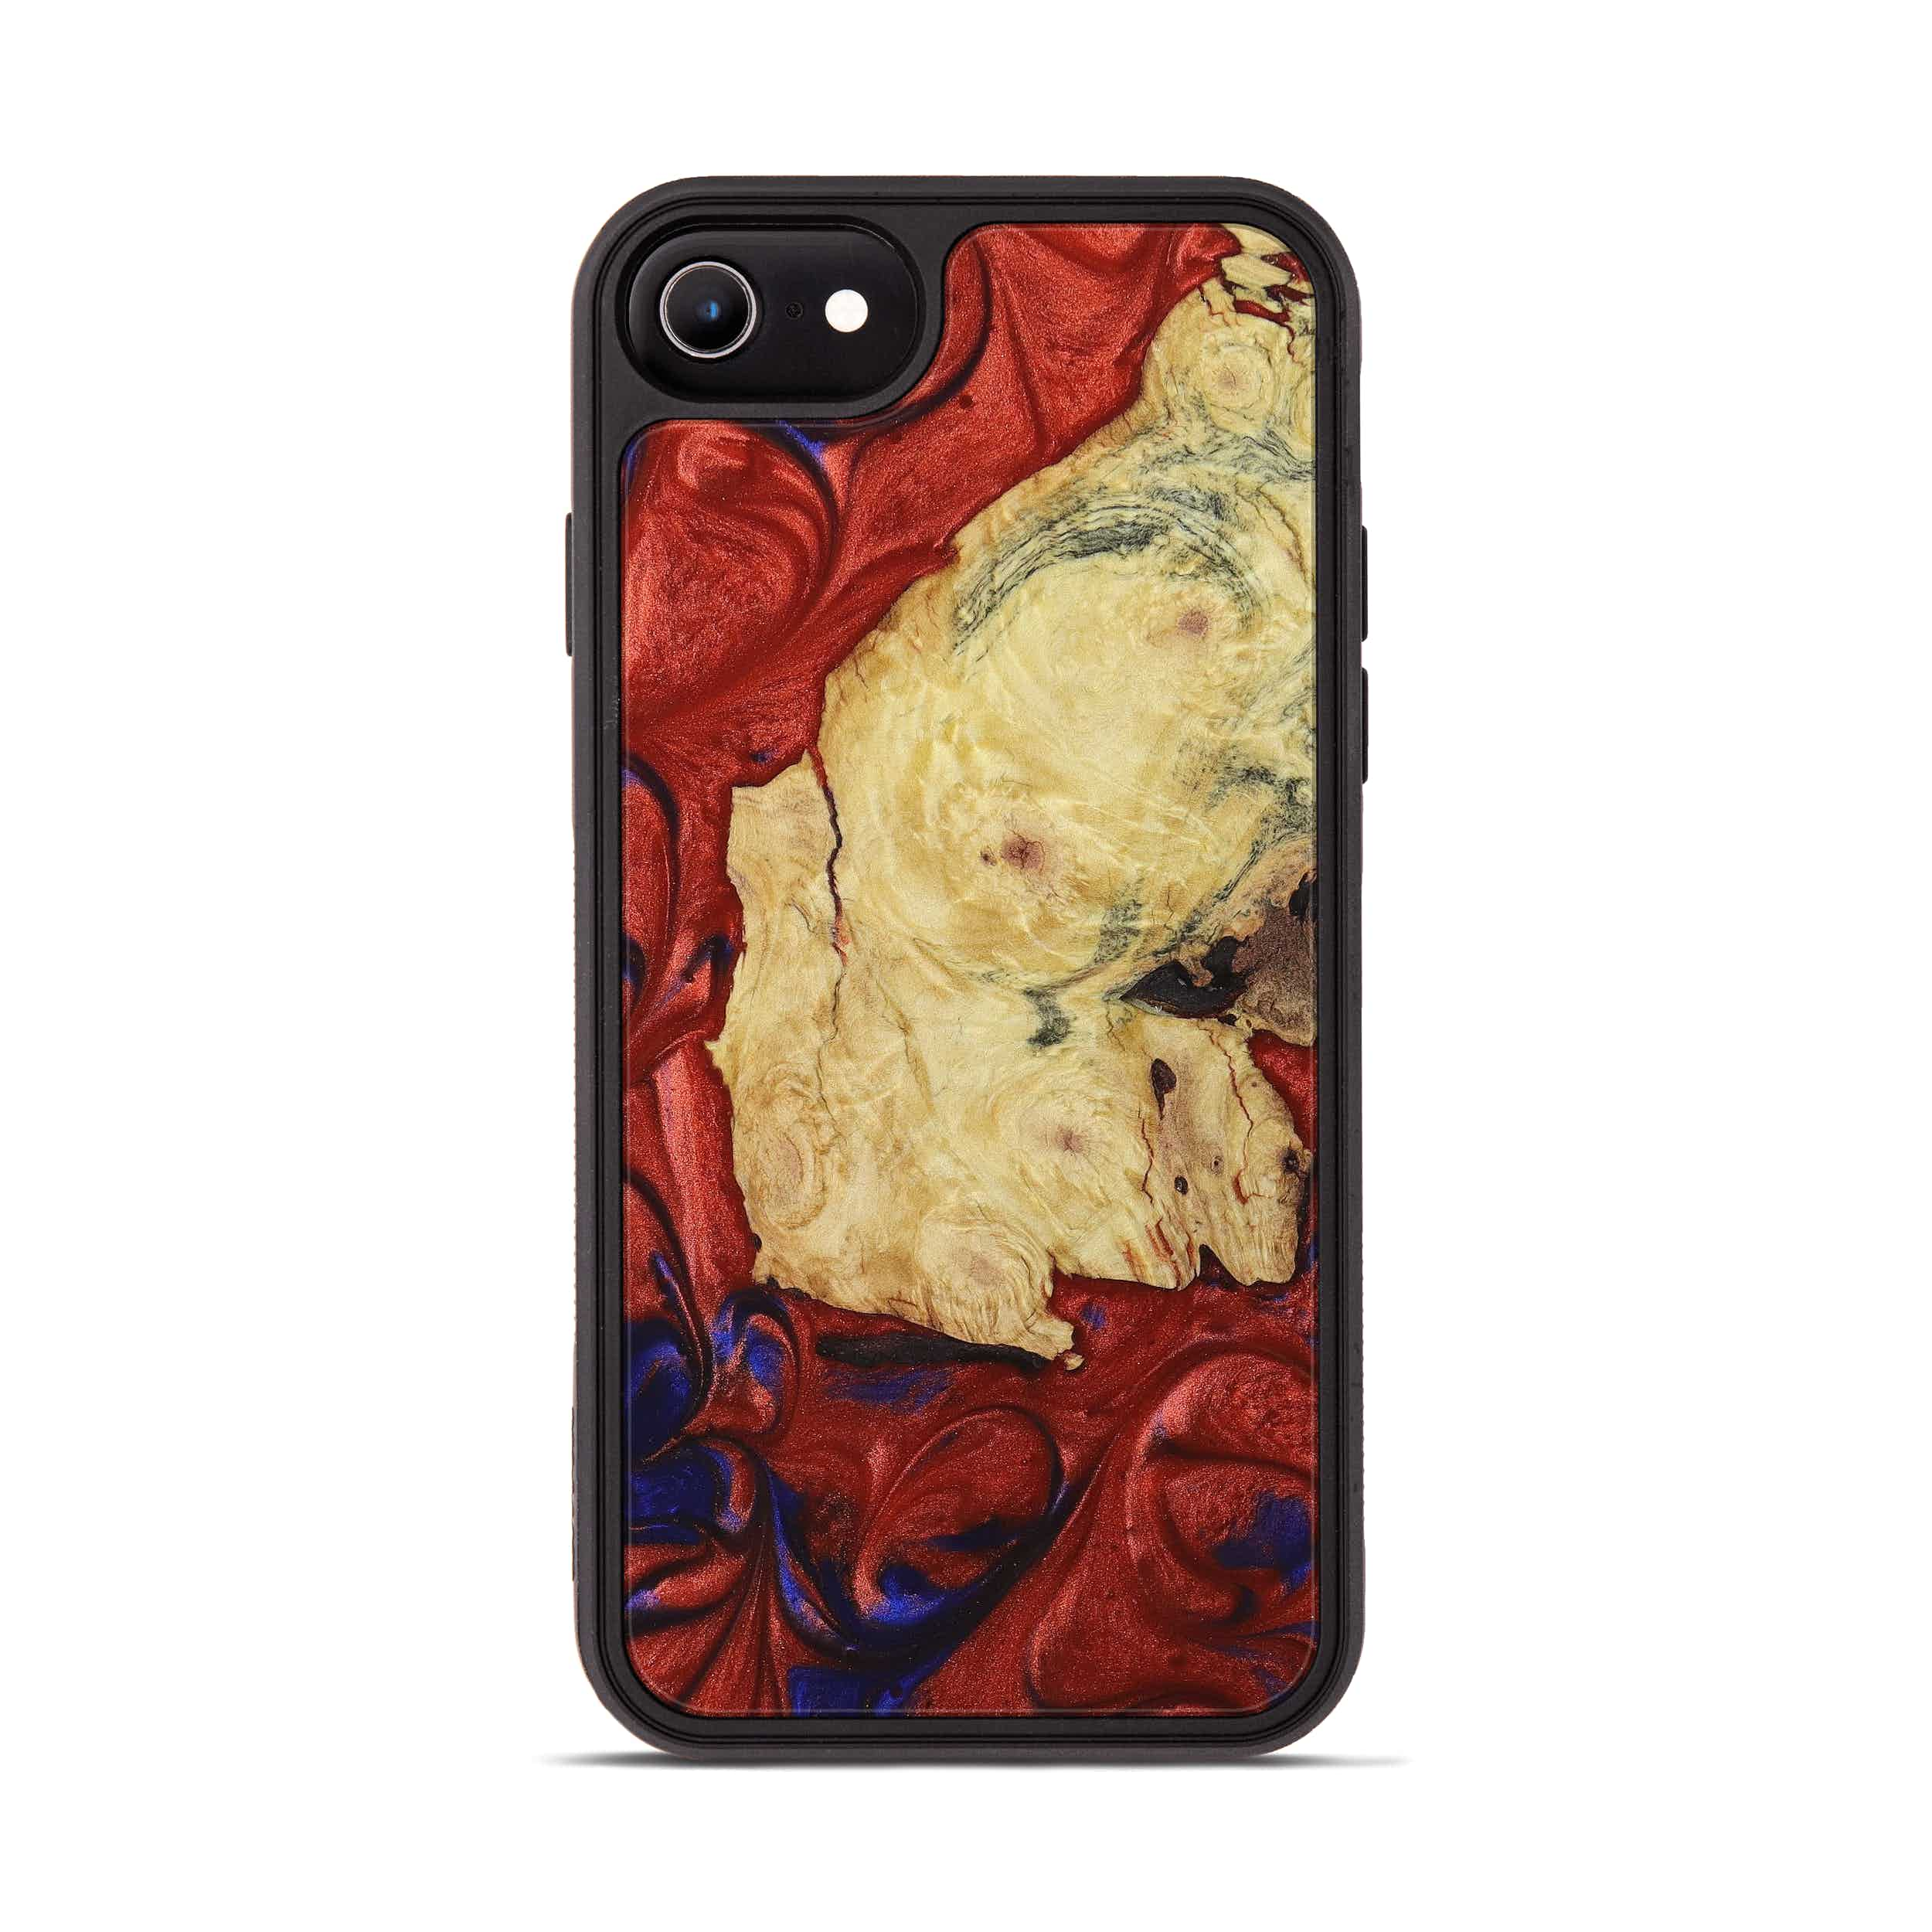 iPhone 6s Wood+Resin Phone Case - Shyam (Blue & Red, 395960)